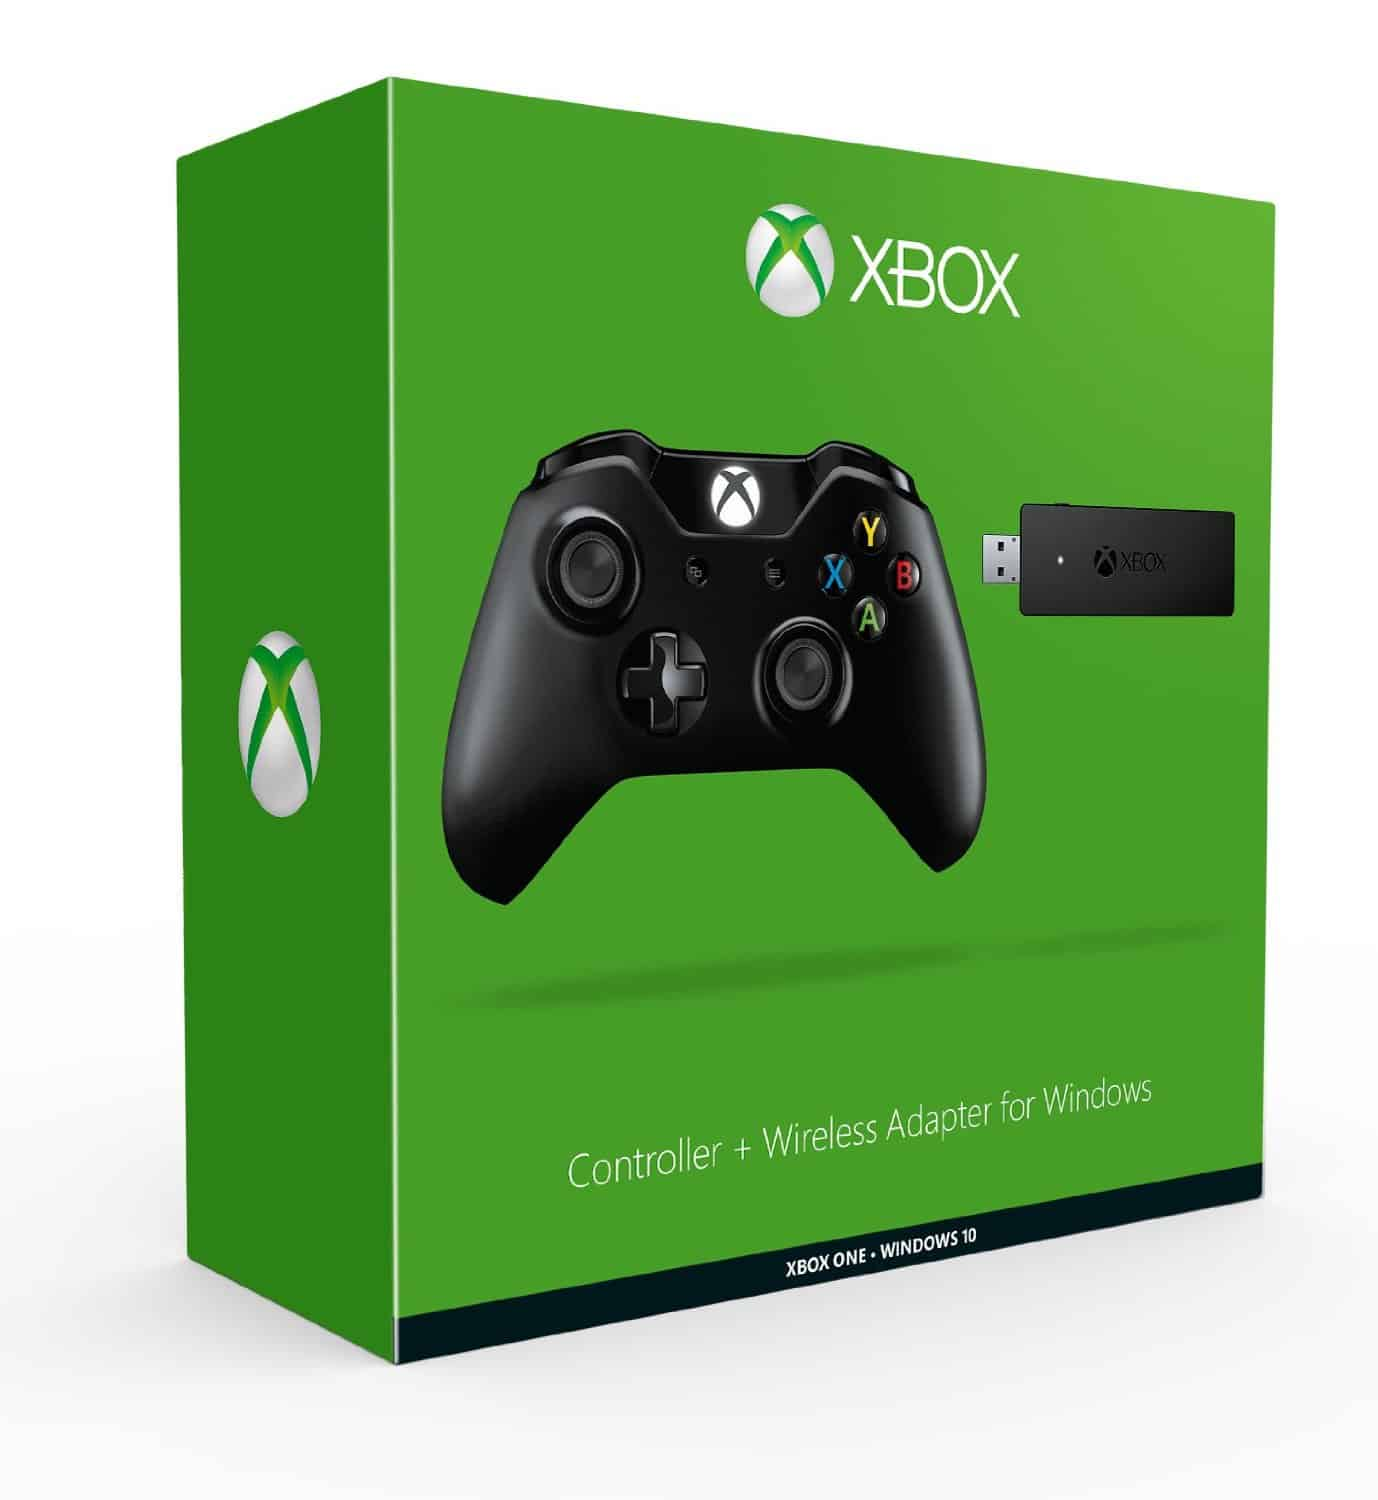 xbox one wireless adapter for windows. Black Bedroom Furniture Sets. Home Design Ideas